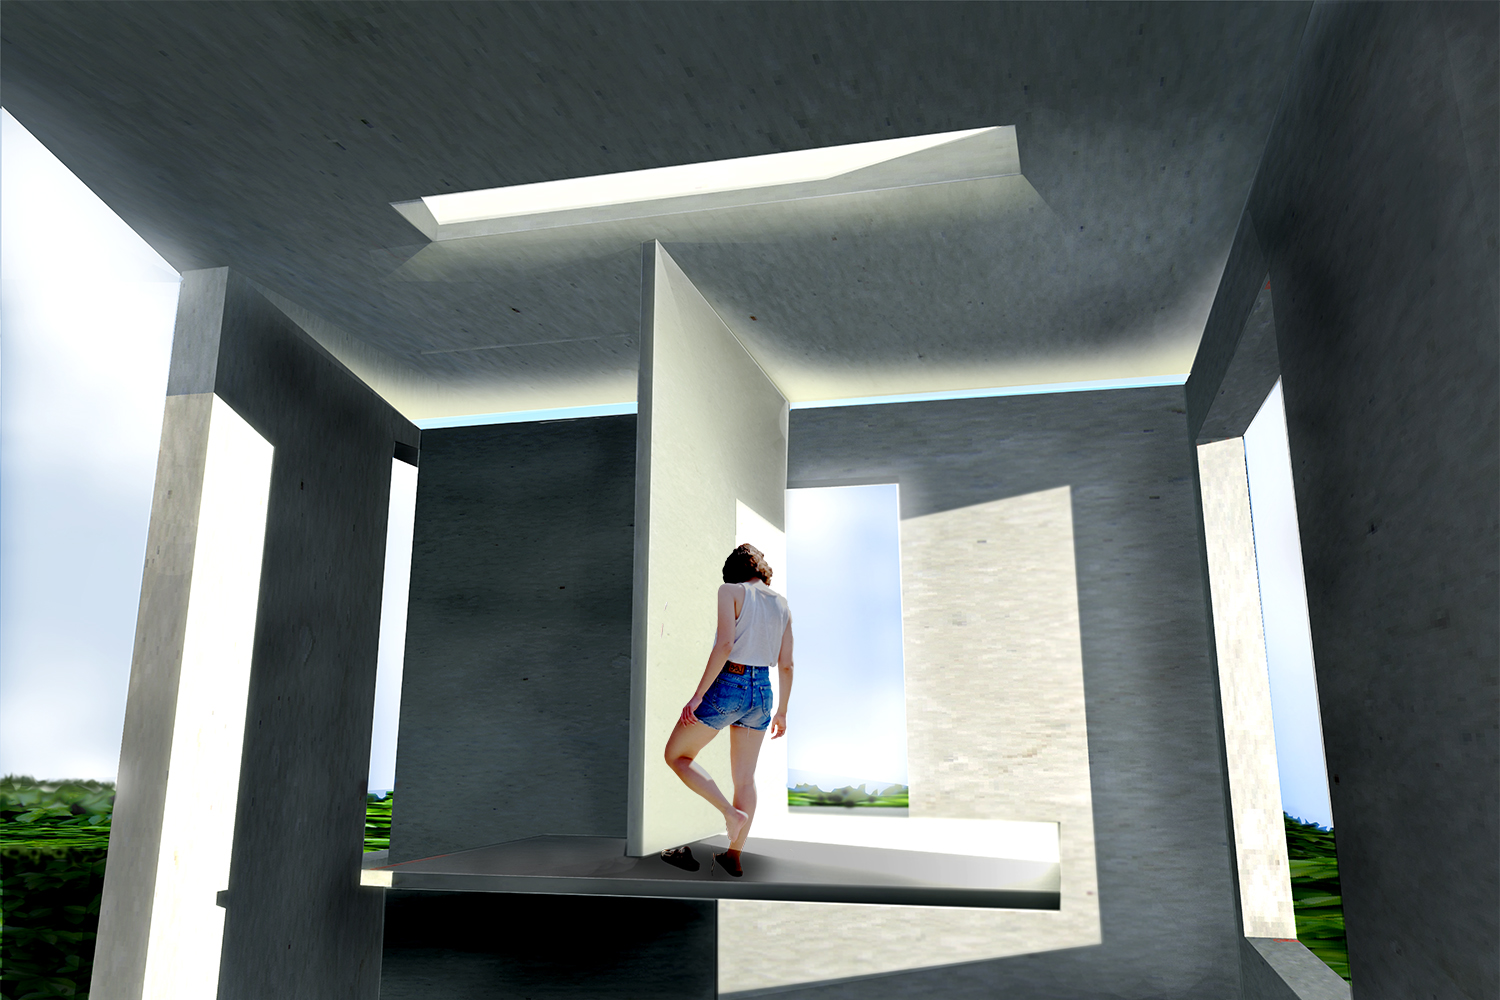 Perspective rendering of interior of first year cube house project with scaled figure.